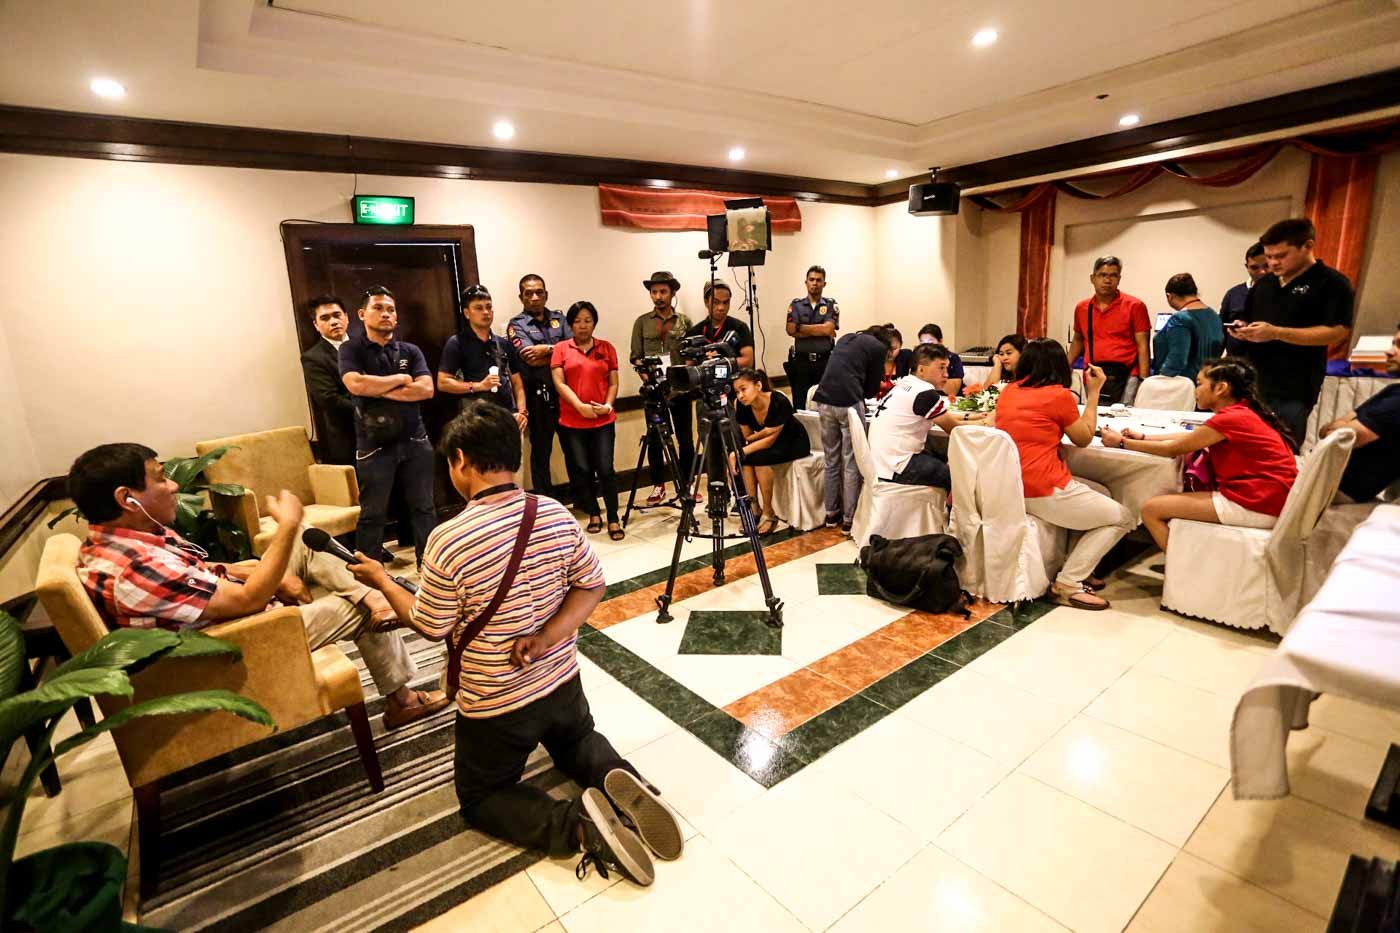 E-DAY. Duterte is interviewed by media after voting in Davao City. Photo by Manman Dejeto/Rappler